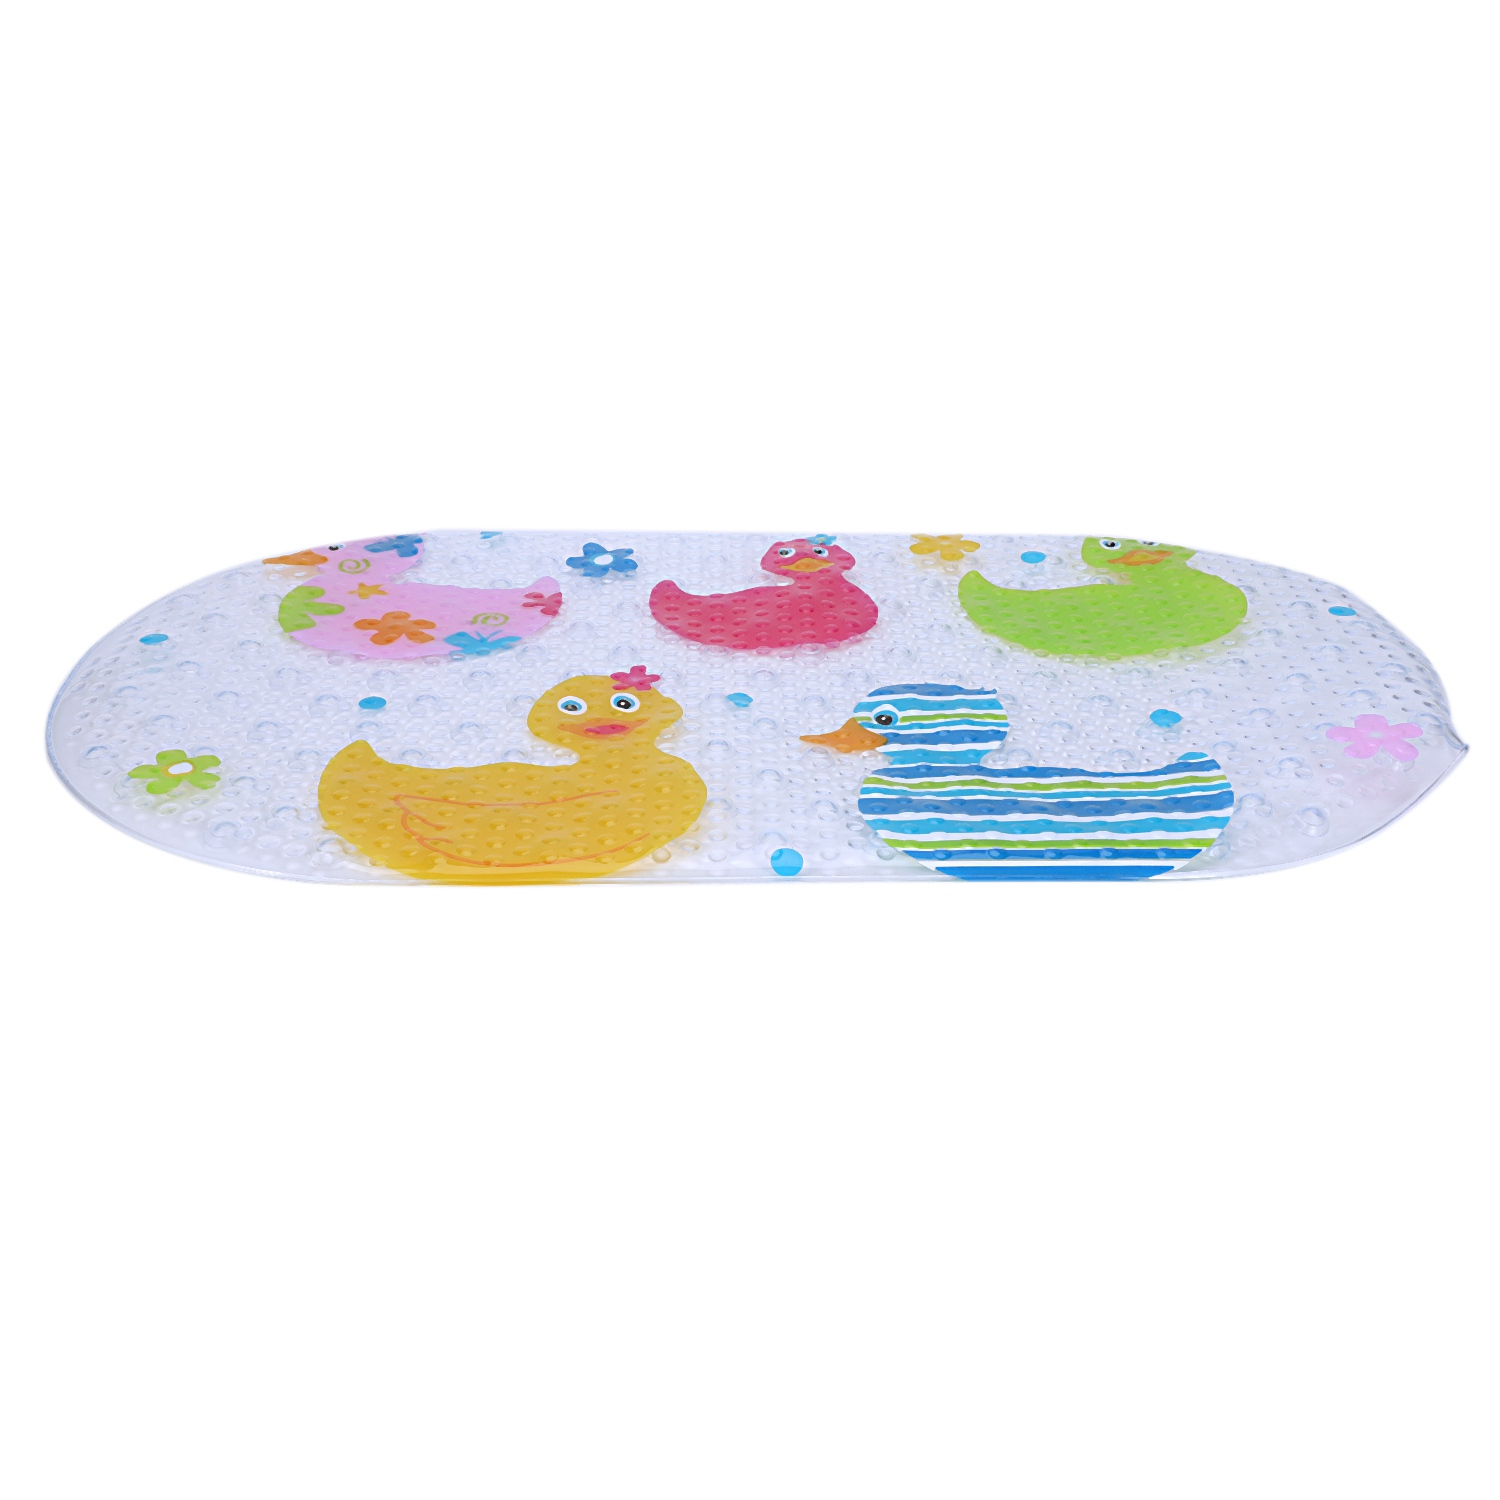 Kids Cartoon Non Slip Suction PVC Safety